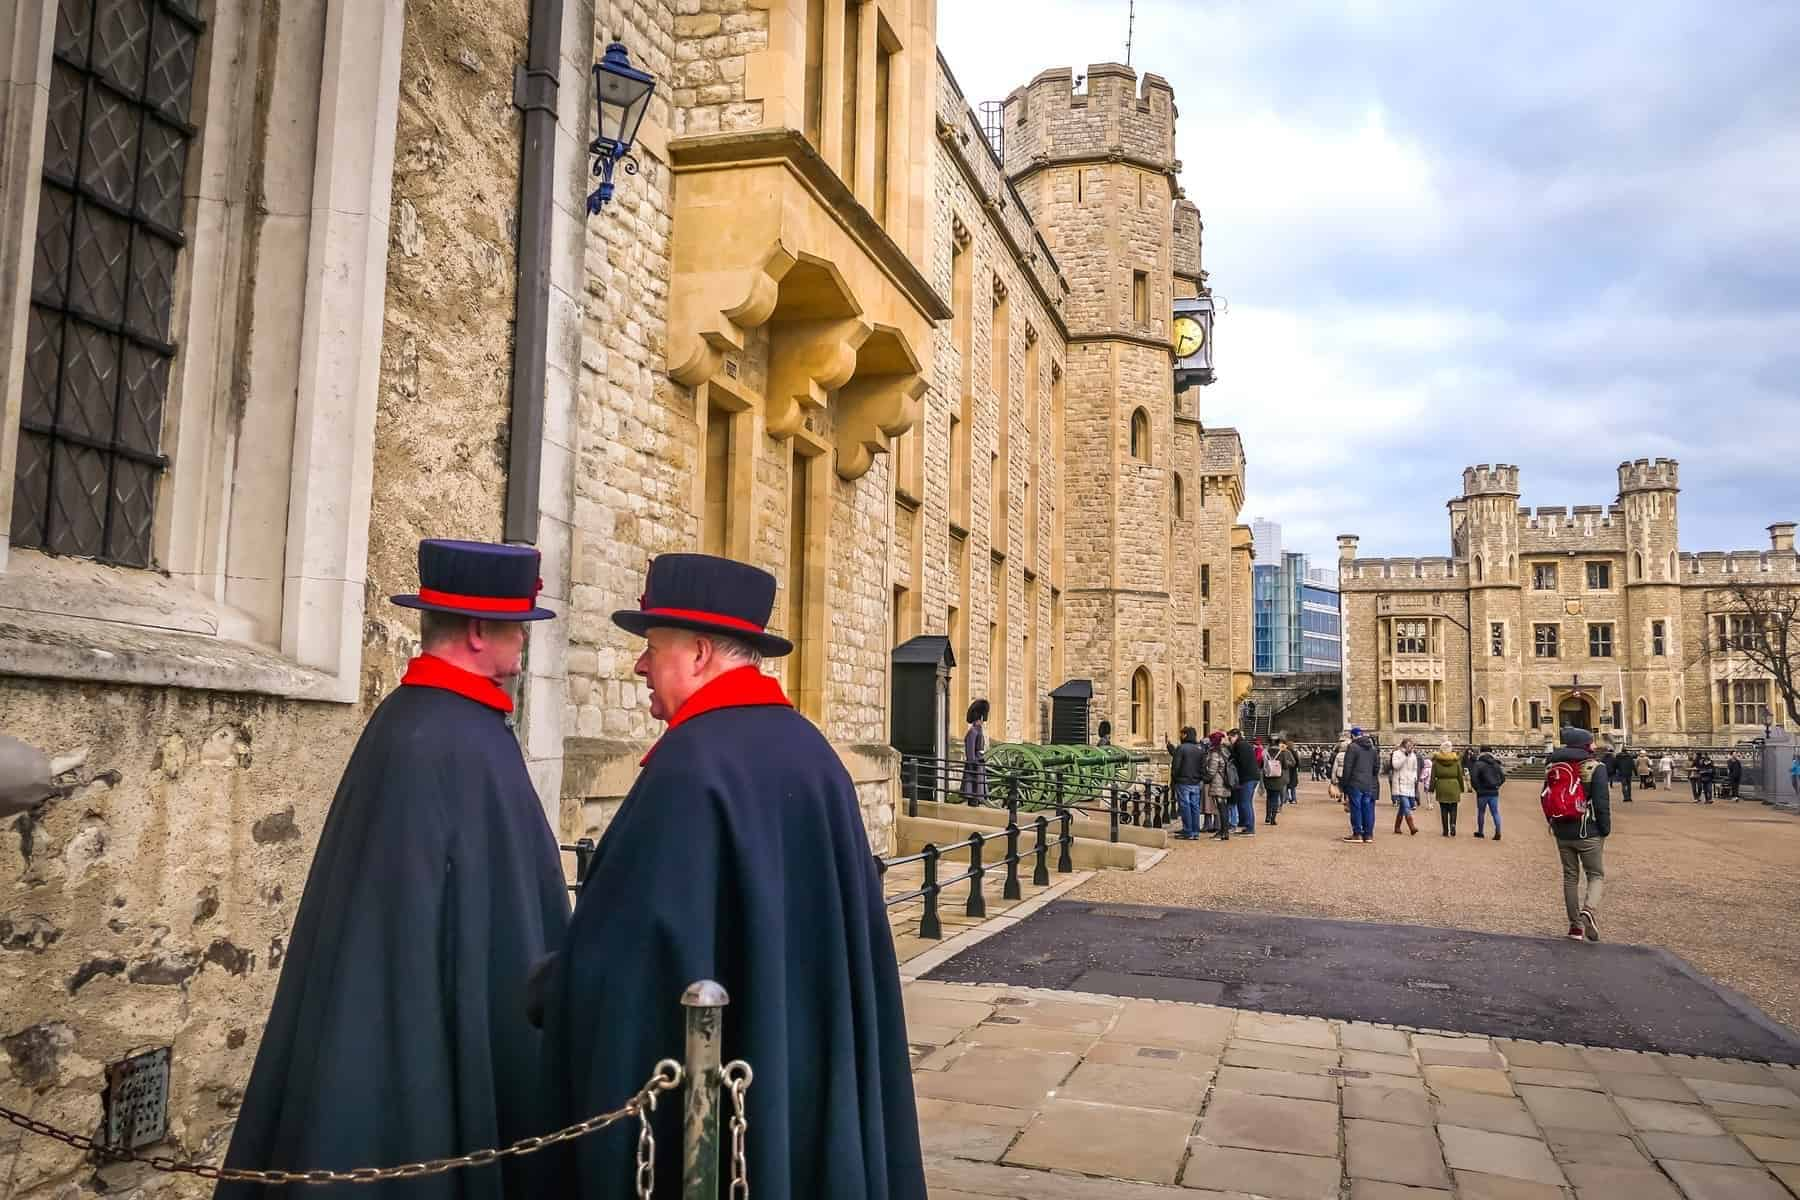 Two Yeomen Warders at Tower of London. Yeomen Warders also known as Beefeaters are ceremonial guardians of the Tower of London.Her Majesty's Royal Palace and Fortress the Tower of London in London.